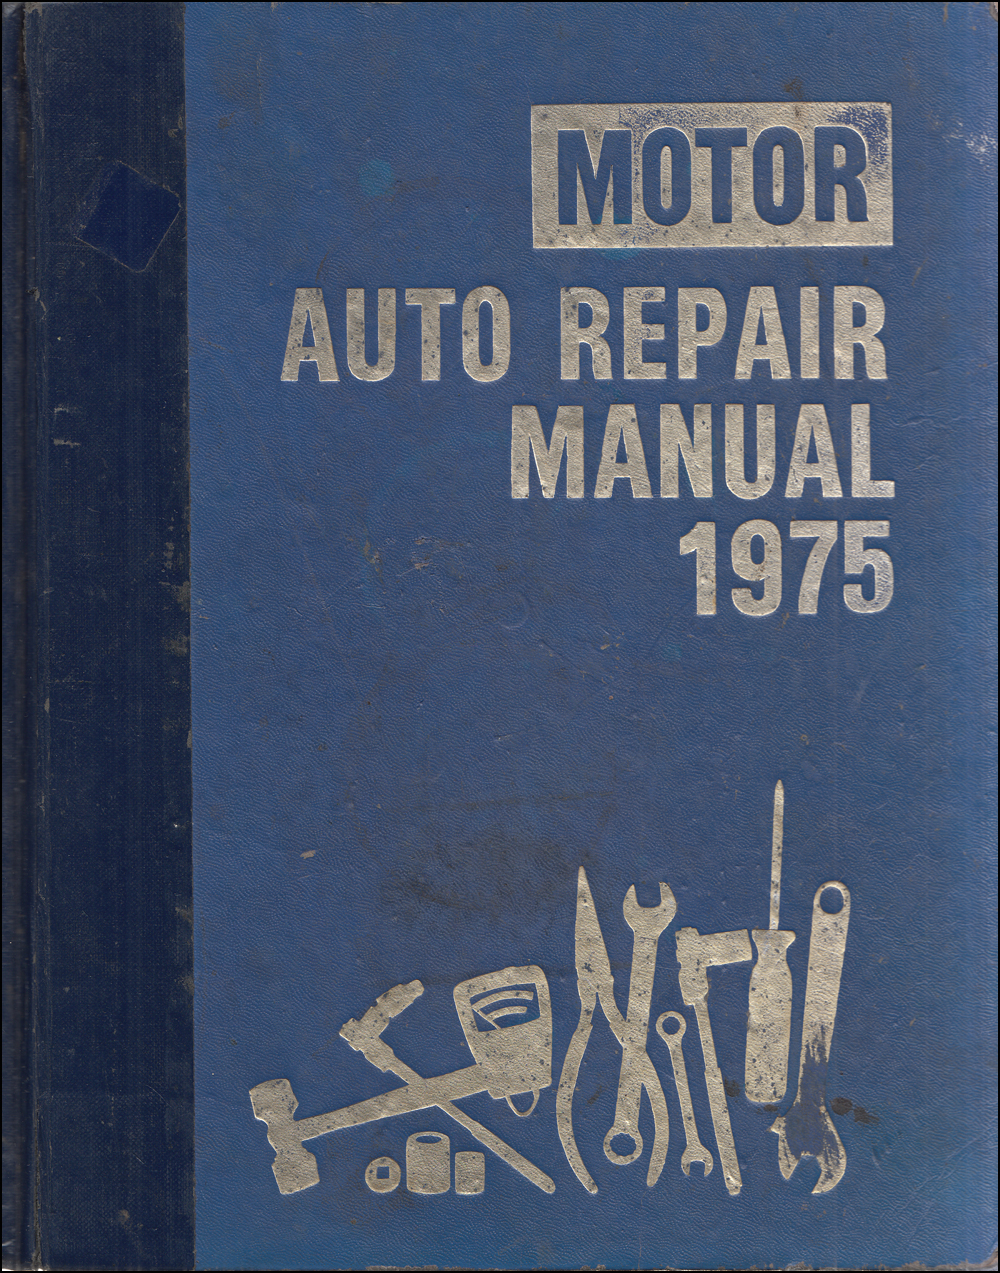 1969 Ford Lincoln Mercury Repair Shop Manual Original 5-volume Set